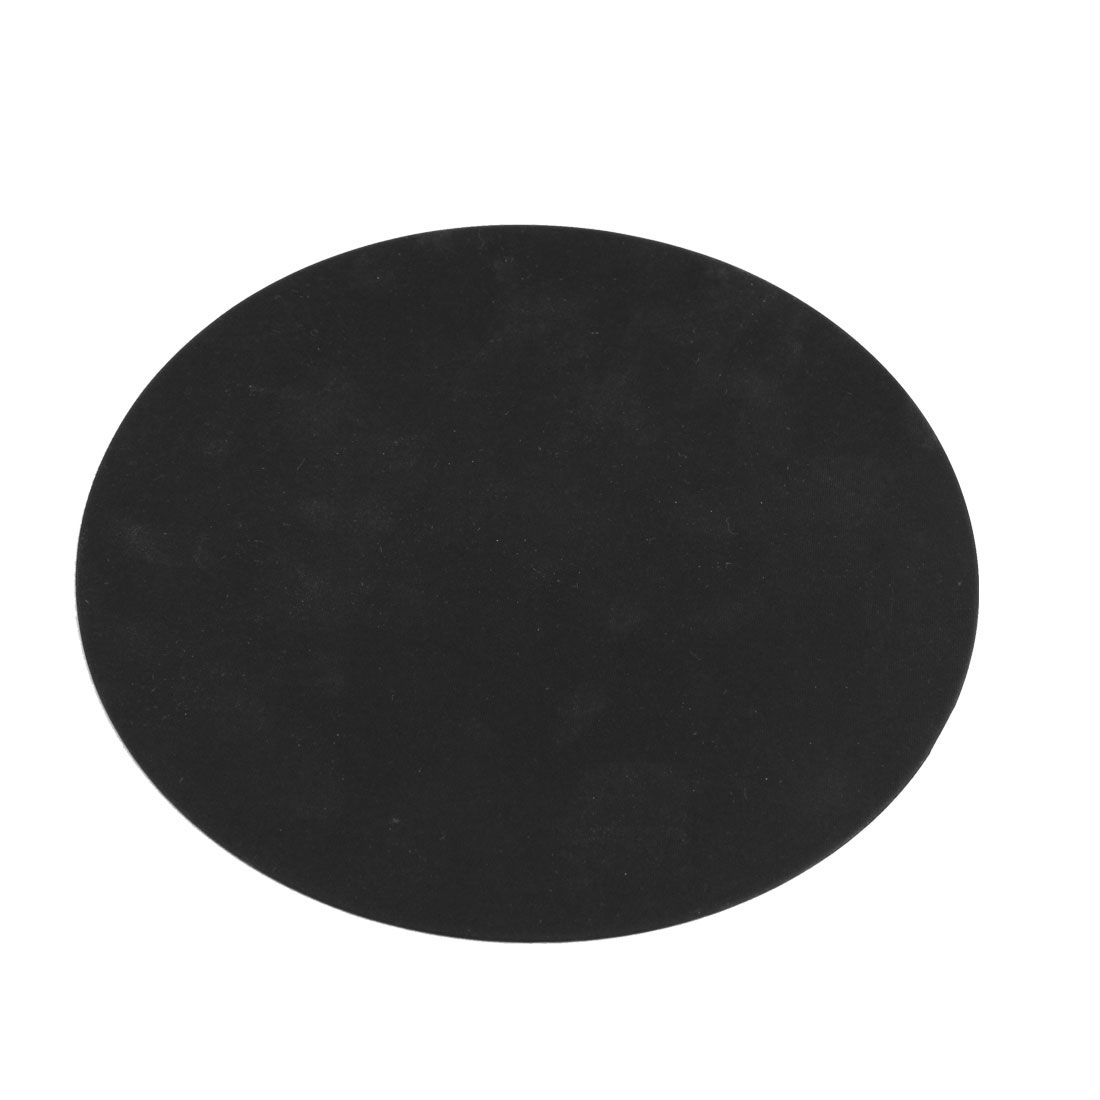 Soft Silicone Round Shape Antislip Mouse Pad Mat Black for PC Computer